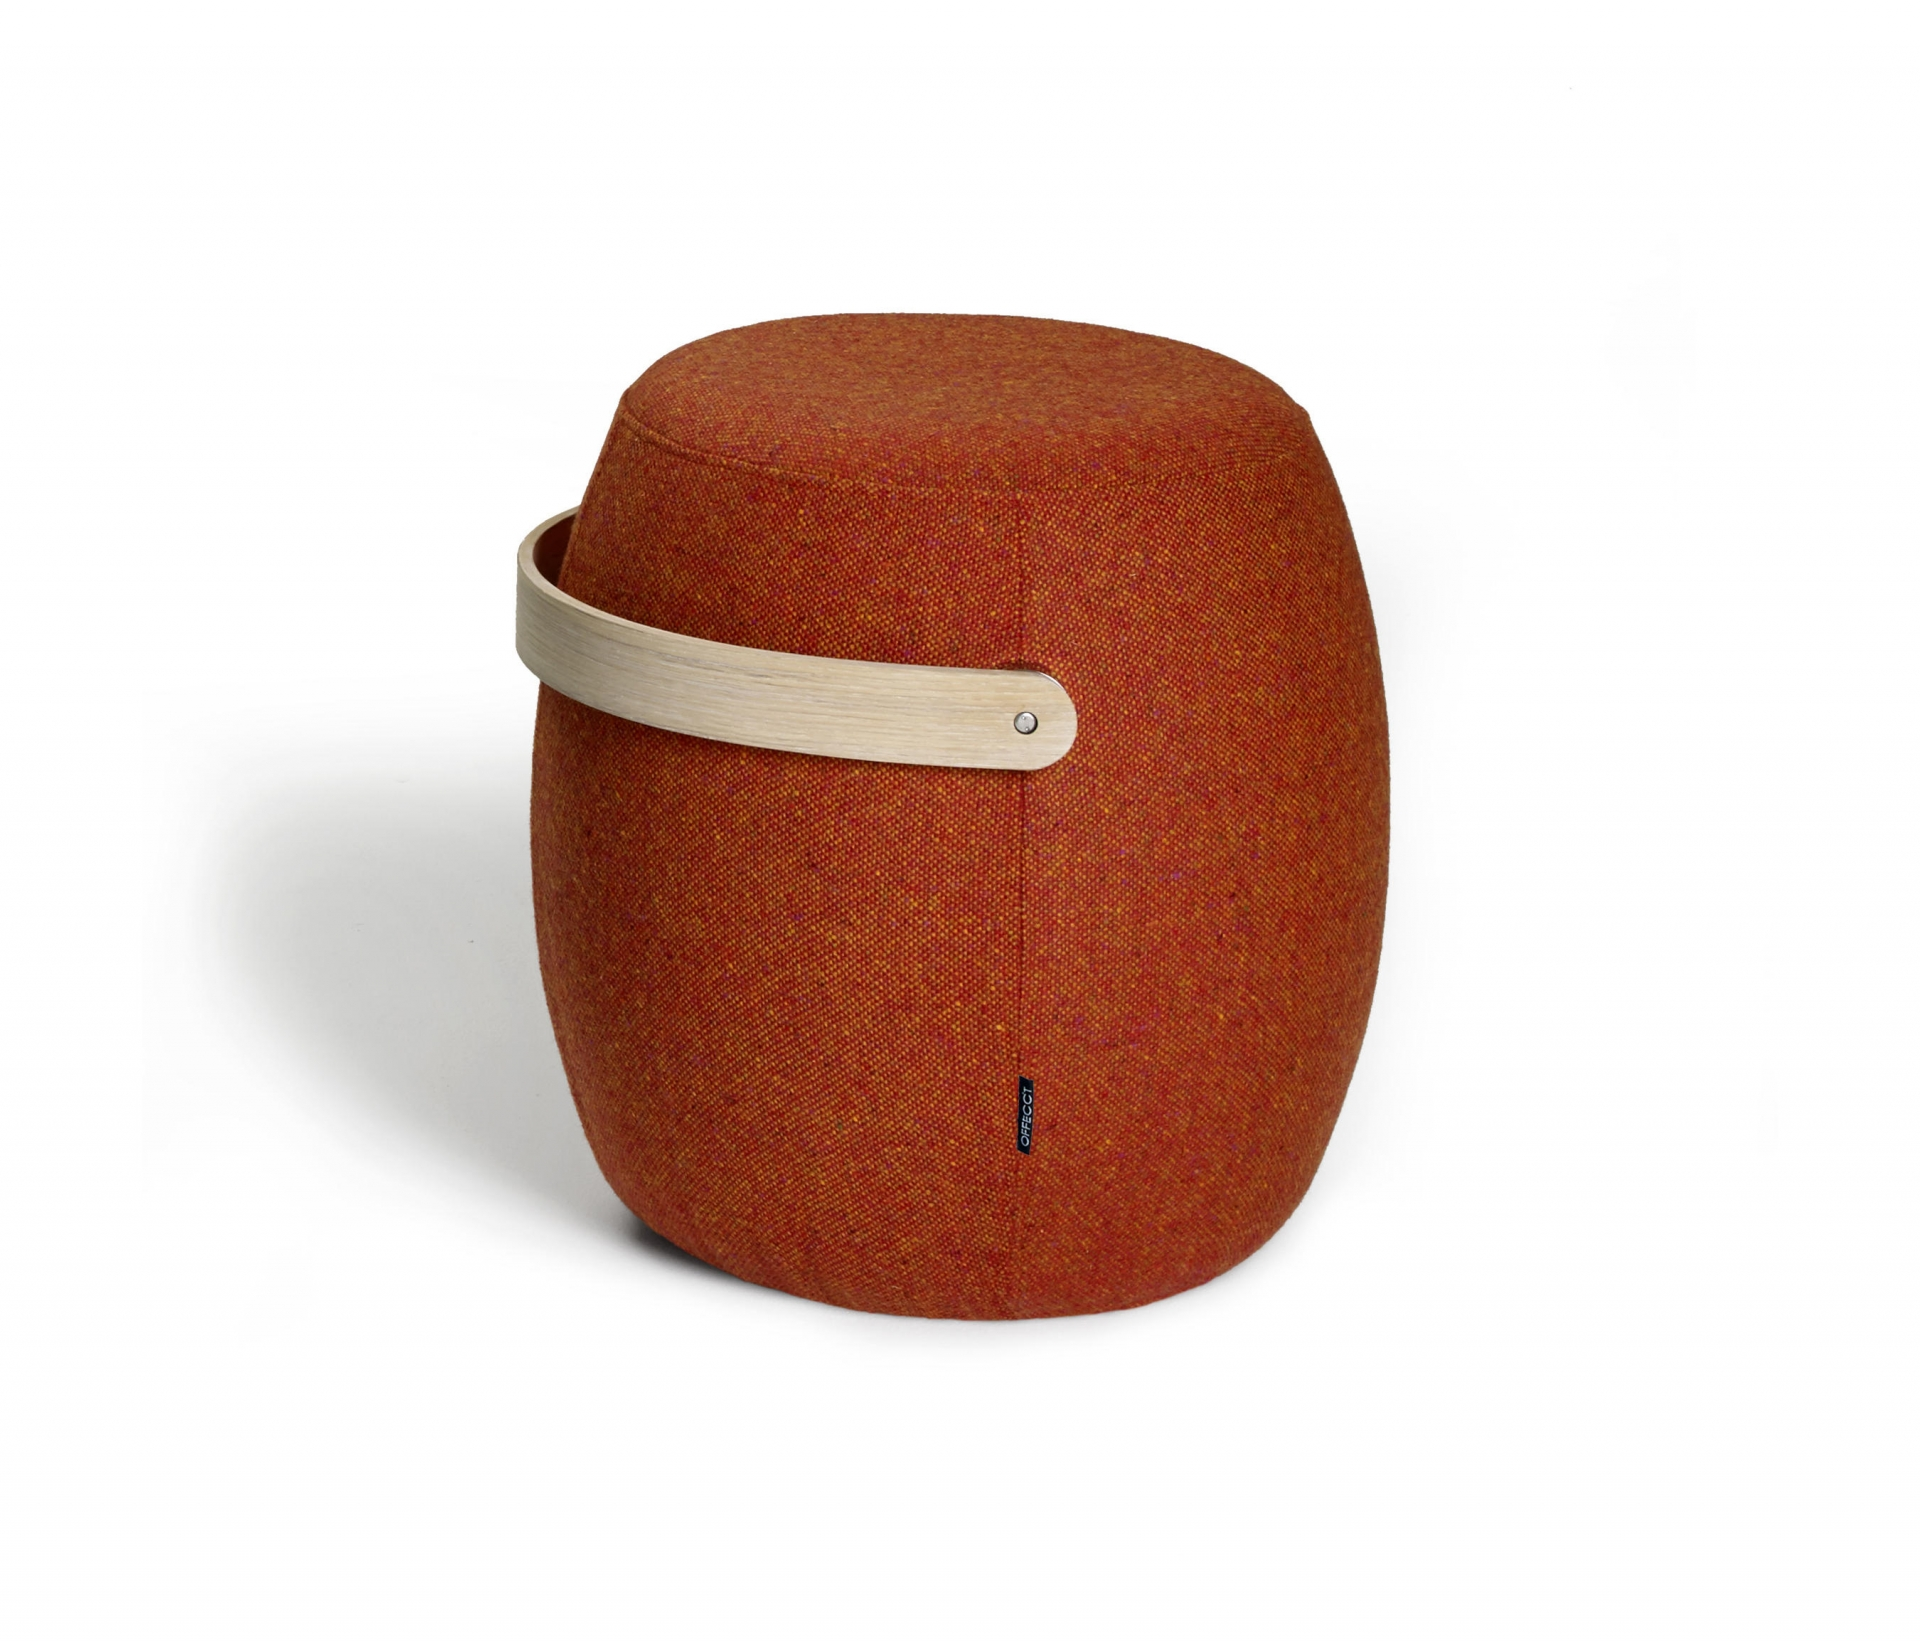 CARRY ON - Pouf / Offecct